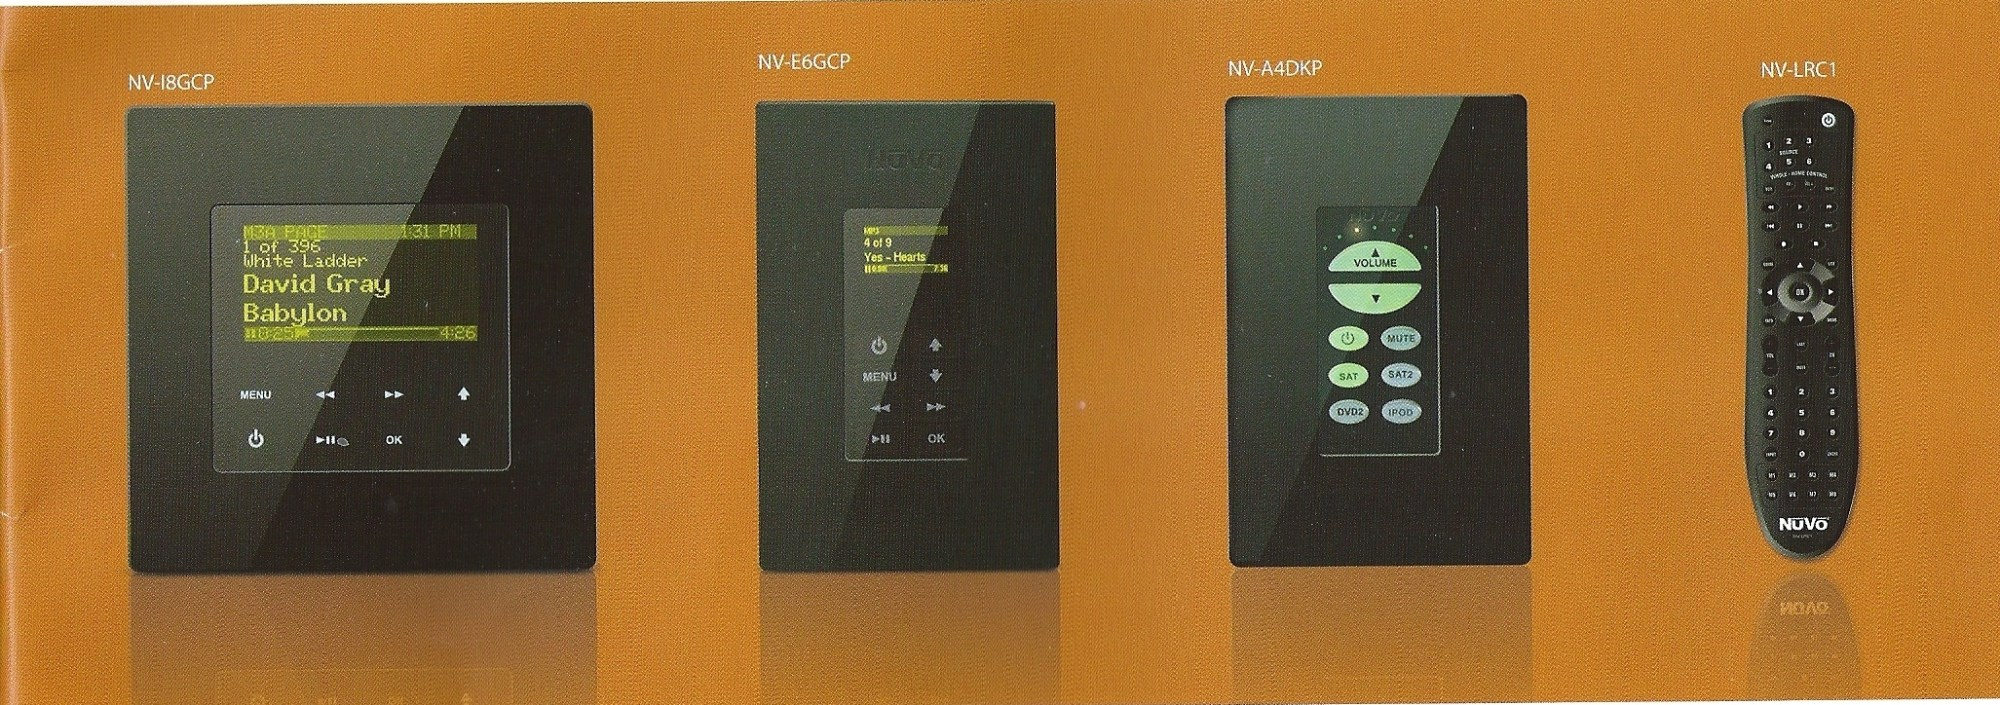 hight resolution of nuvo keypads